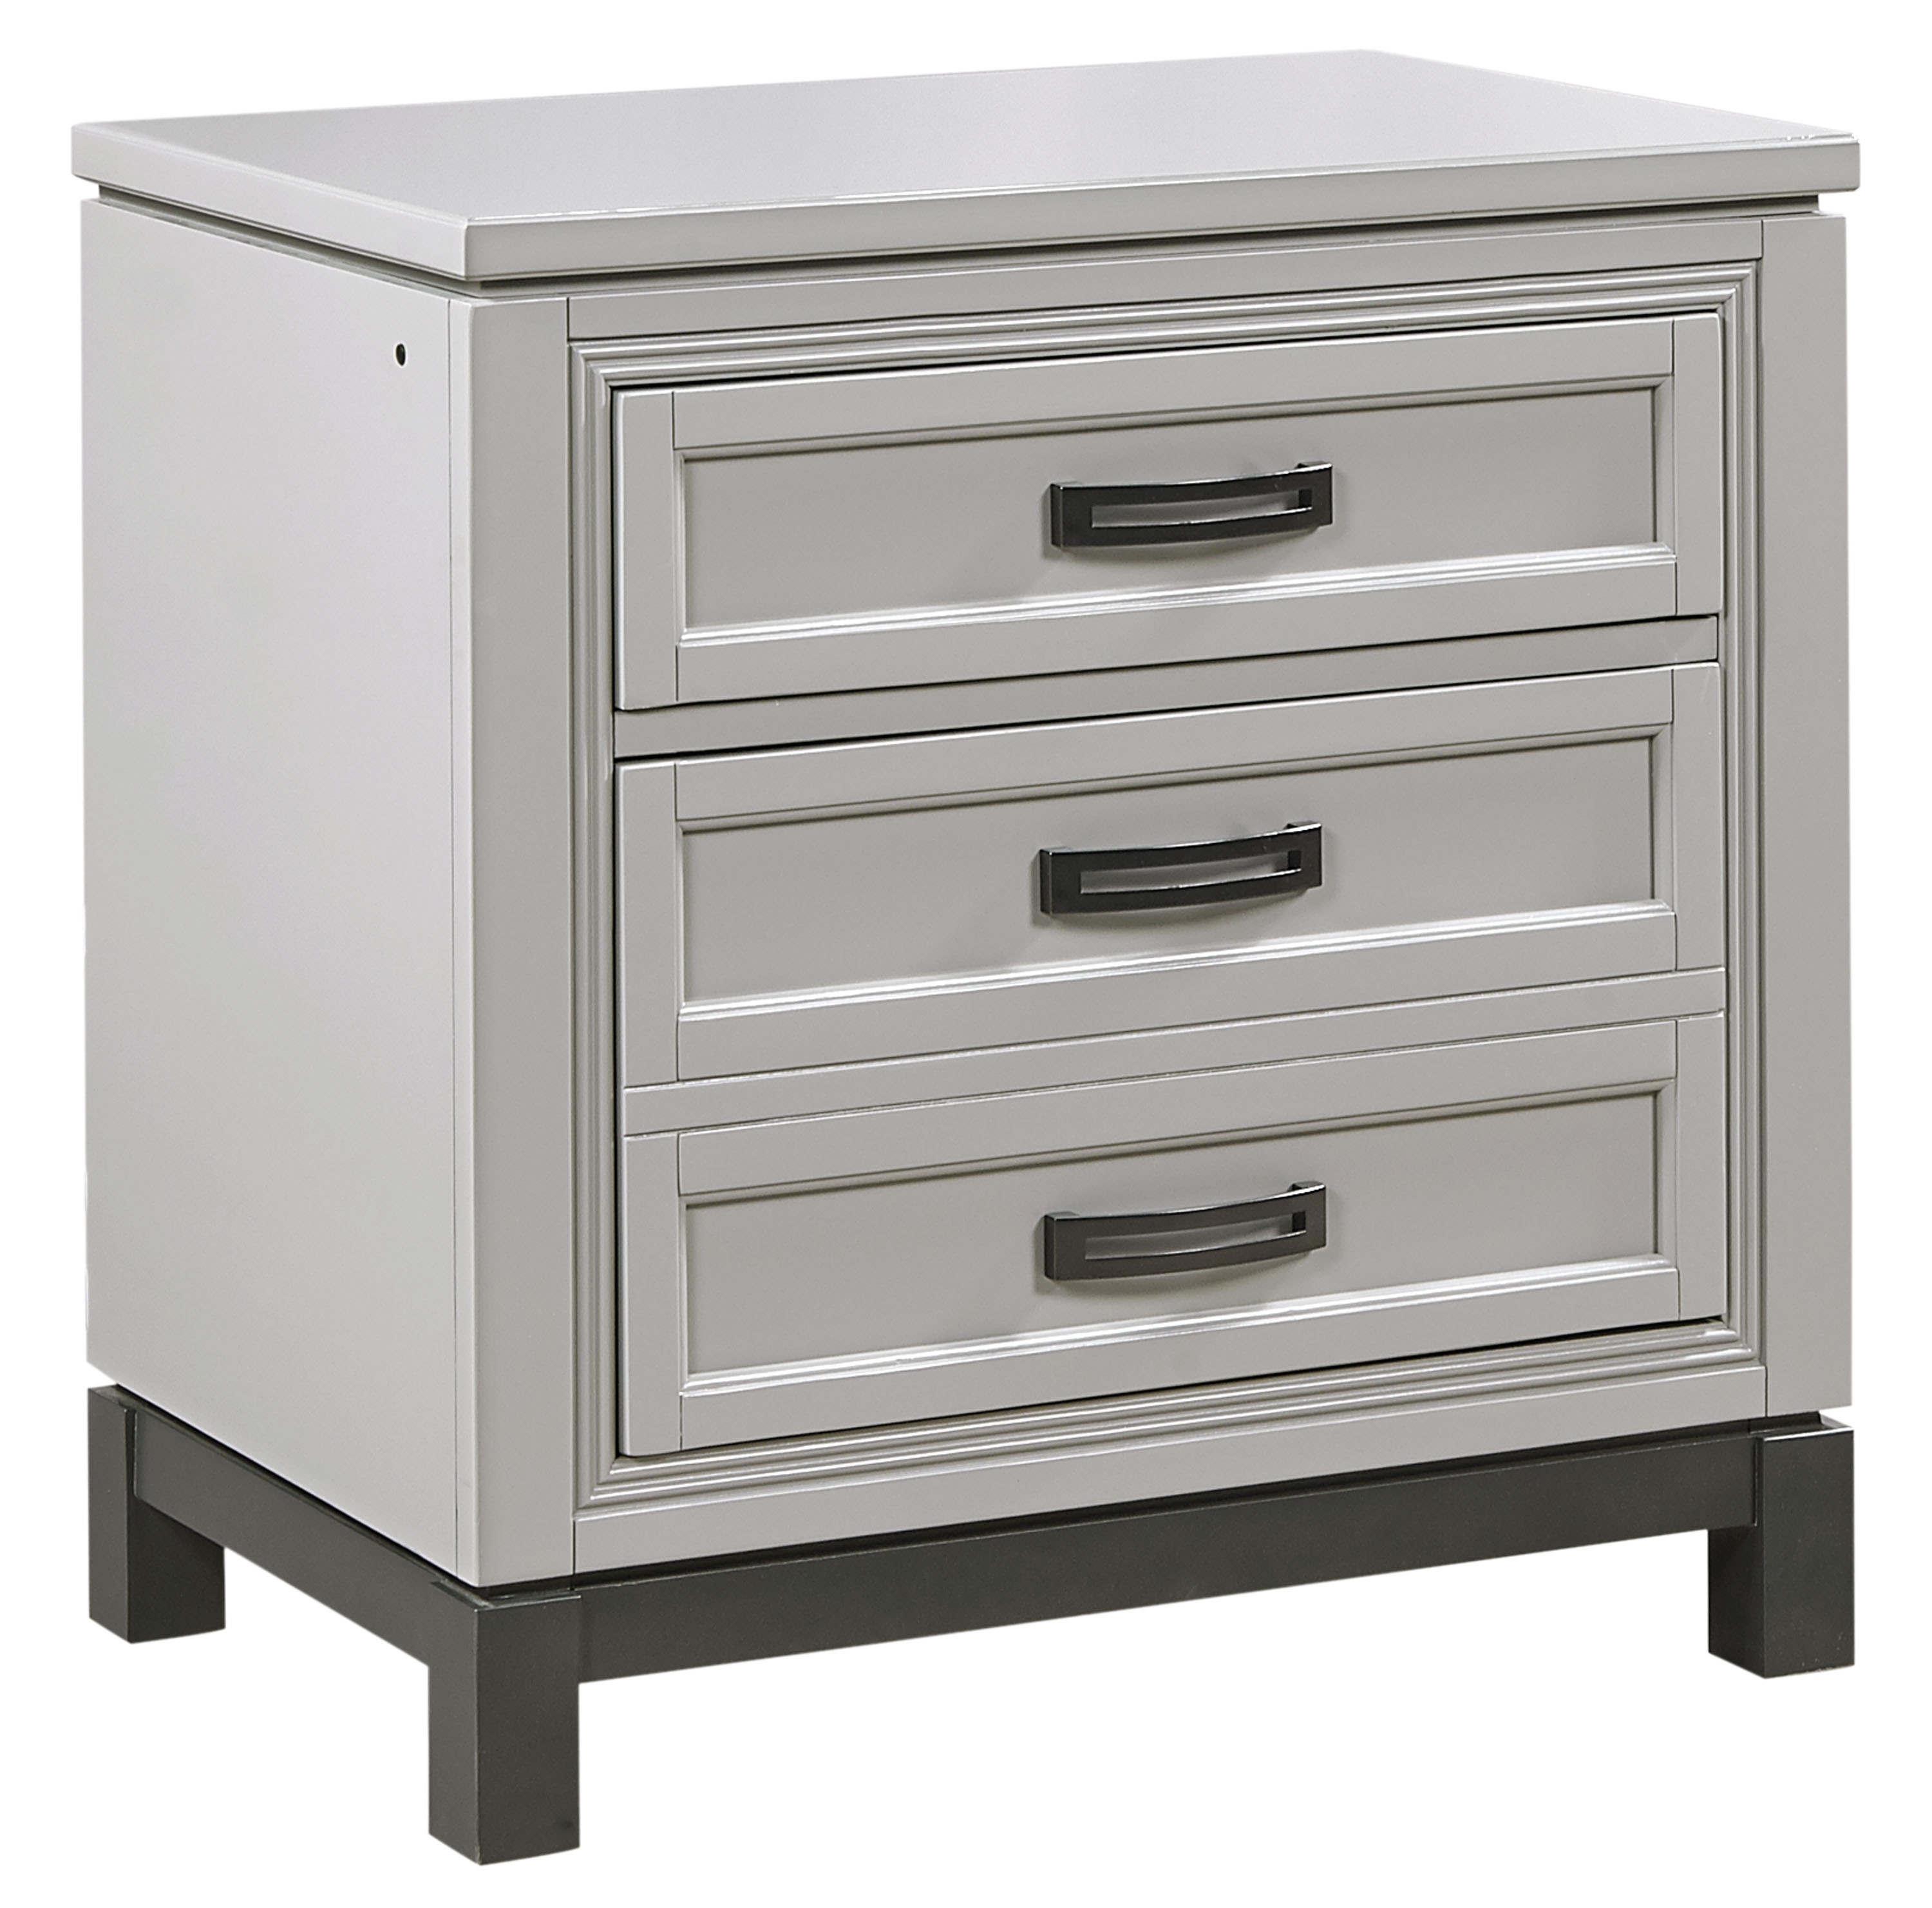 Hyde Park Liv.360 Nightstand  by Aspenhome at Stoney Creek Furniture